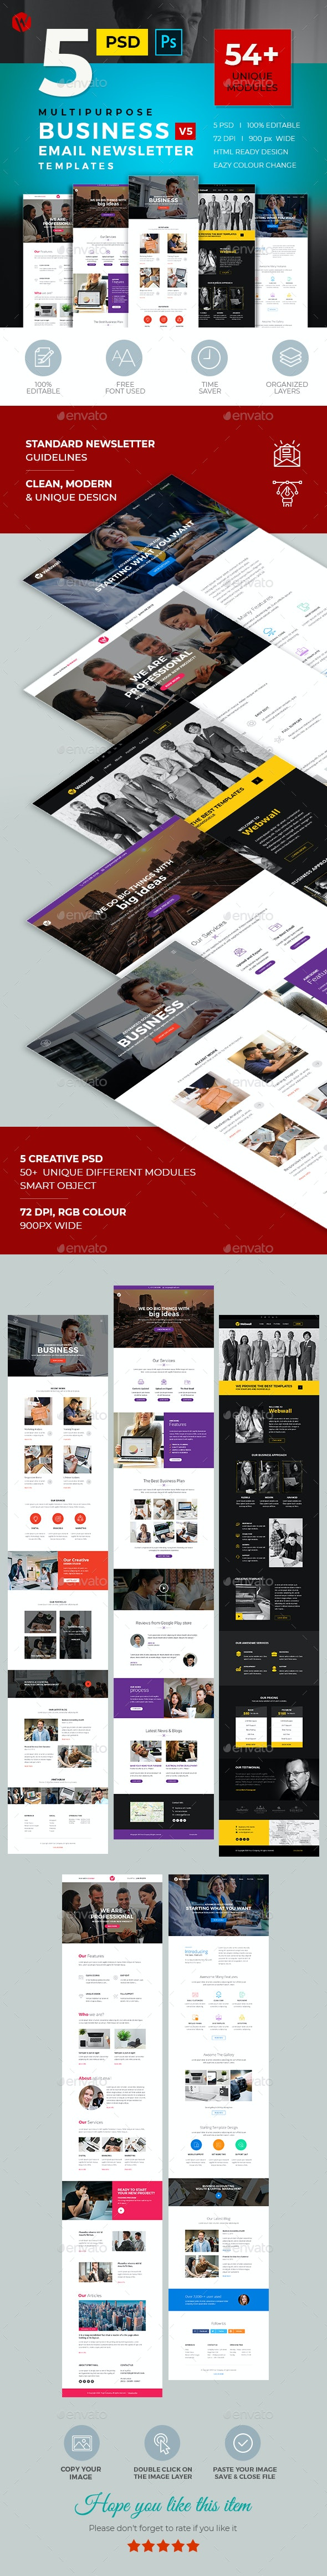 5 Business Email Newsletter PSD Templates v5 - E-newsletters Web Elements